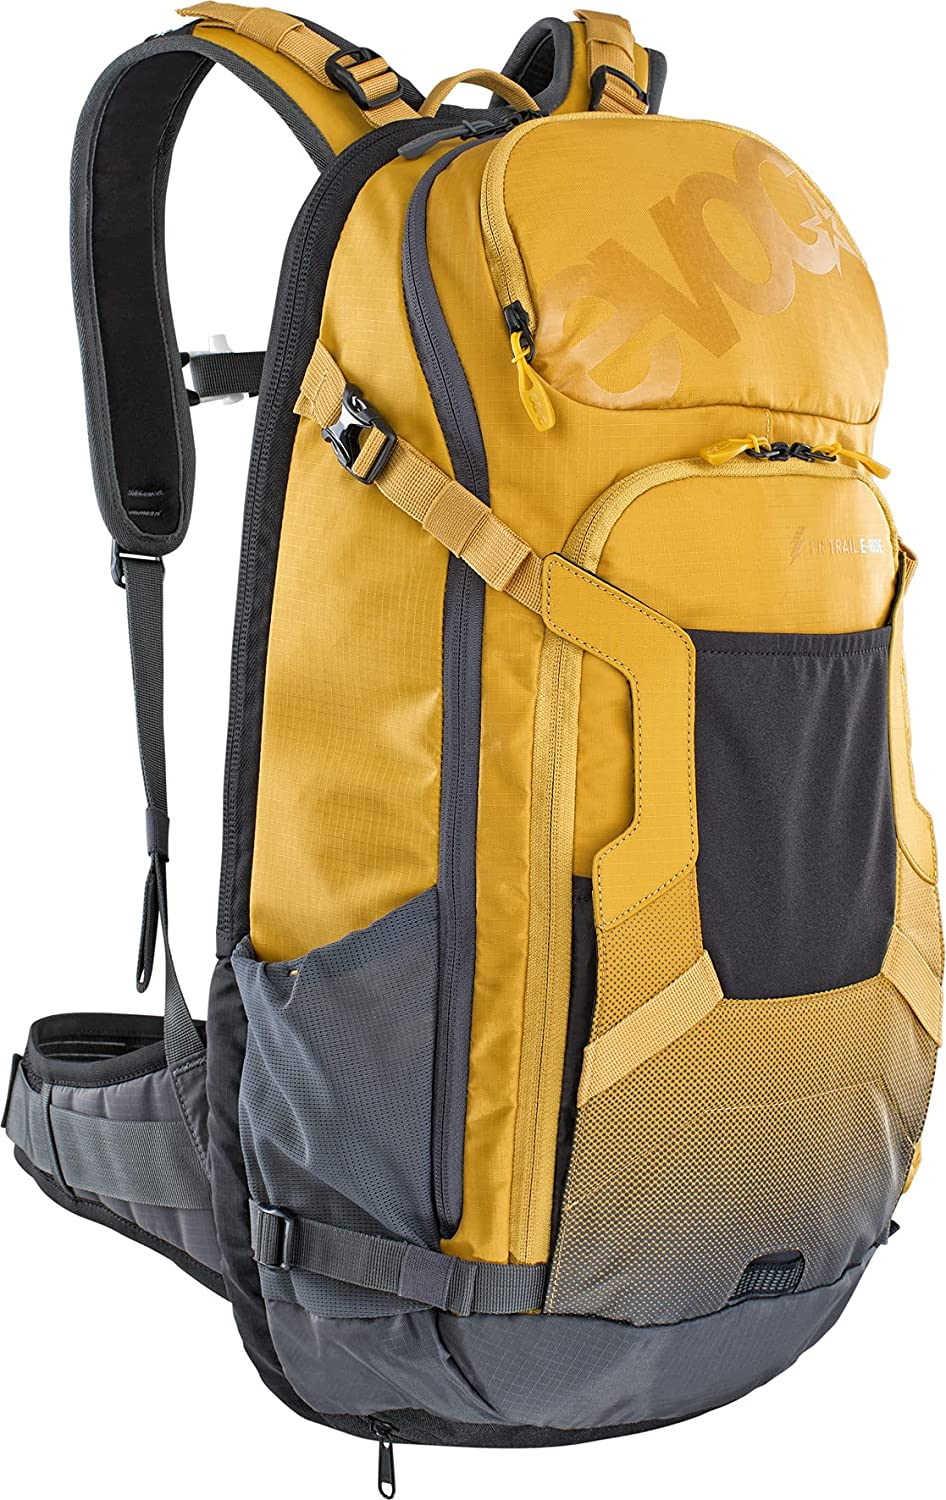 evoc FR Trail E-Ride Los Angeles Mall Sale special price Protector Carbon Loam 20L Grey Backpack